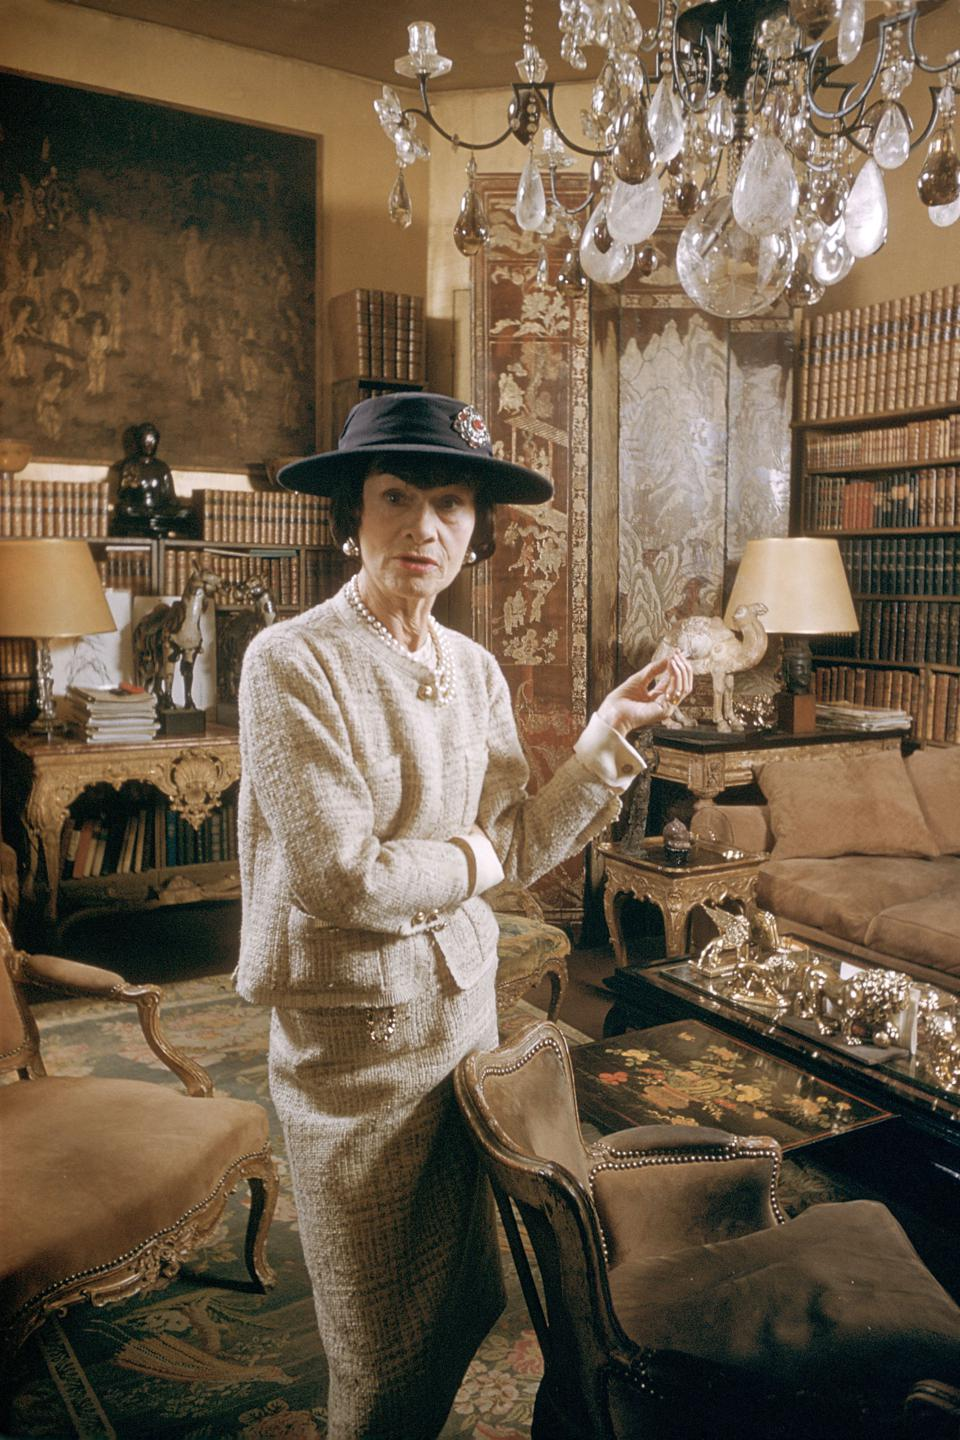 Coco Chanel In Paris, France In 1959